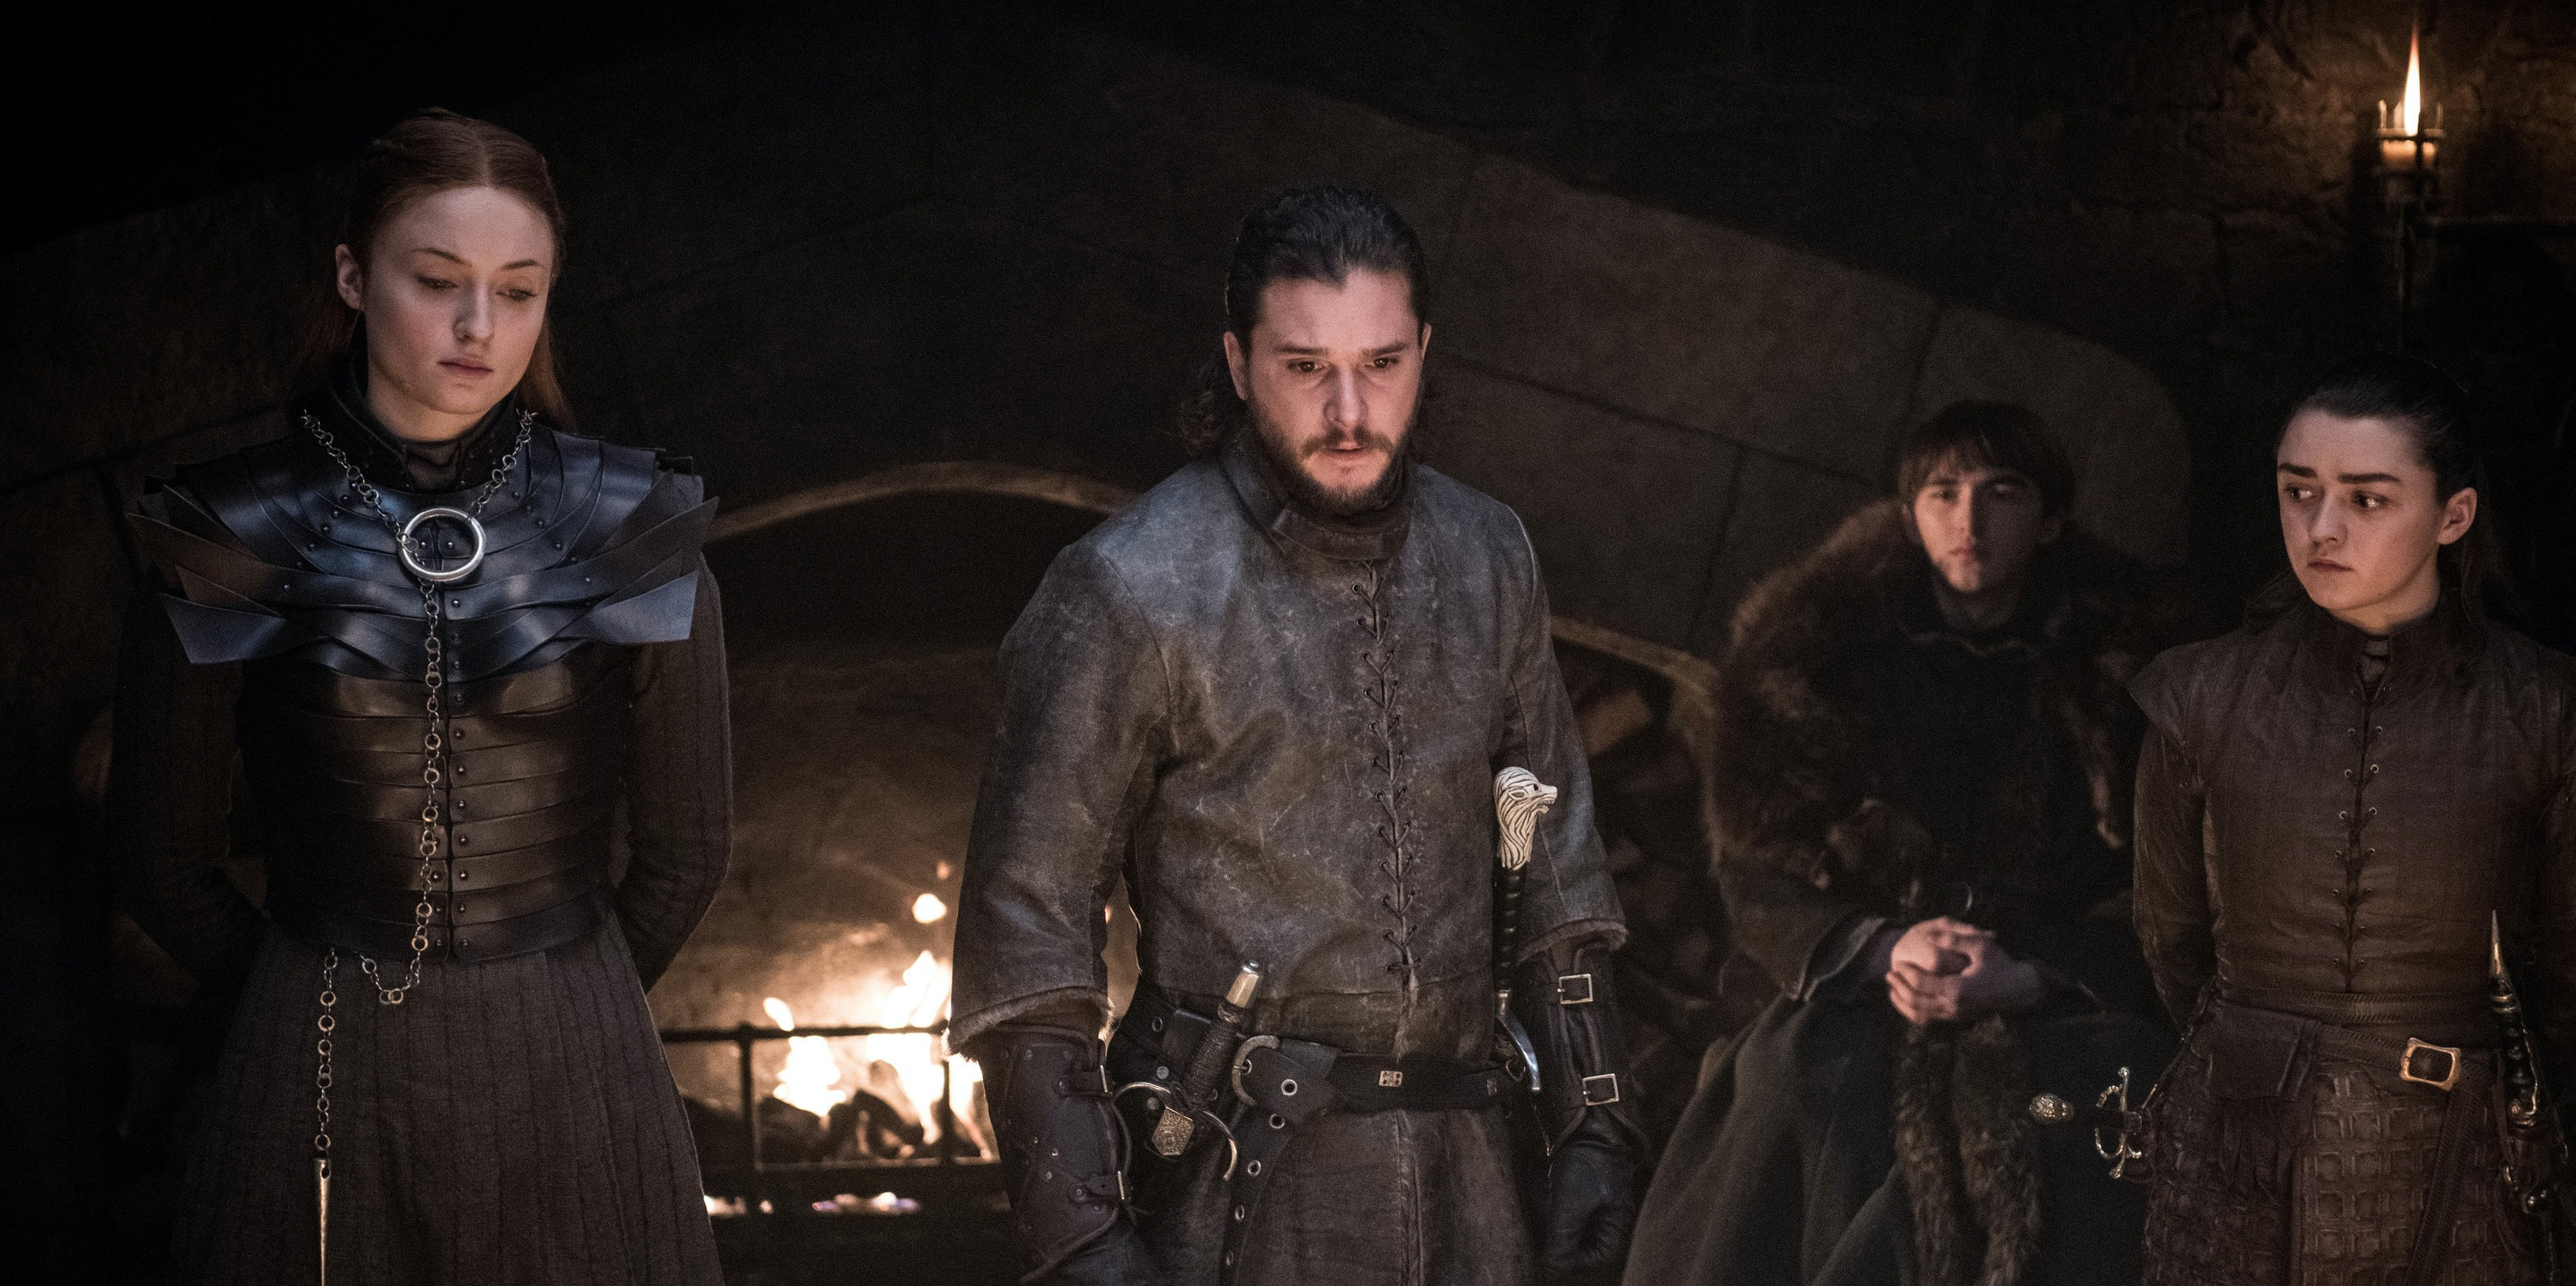 'Game of Thrones' Season 8 Episode 3 Preview Teases the Night King's Plan